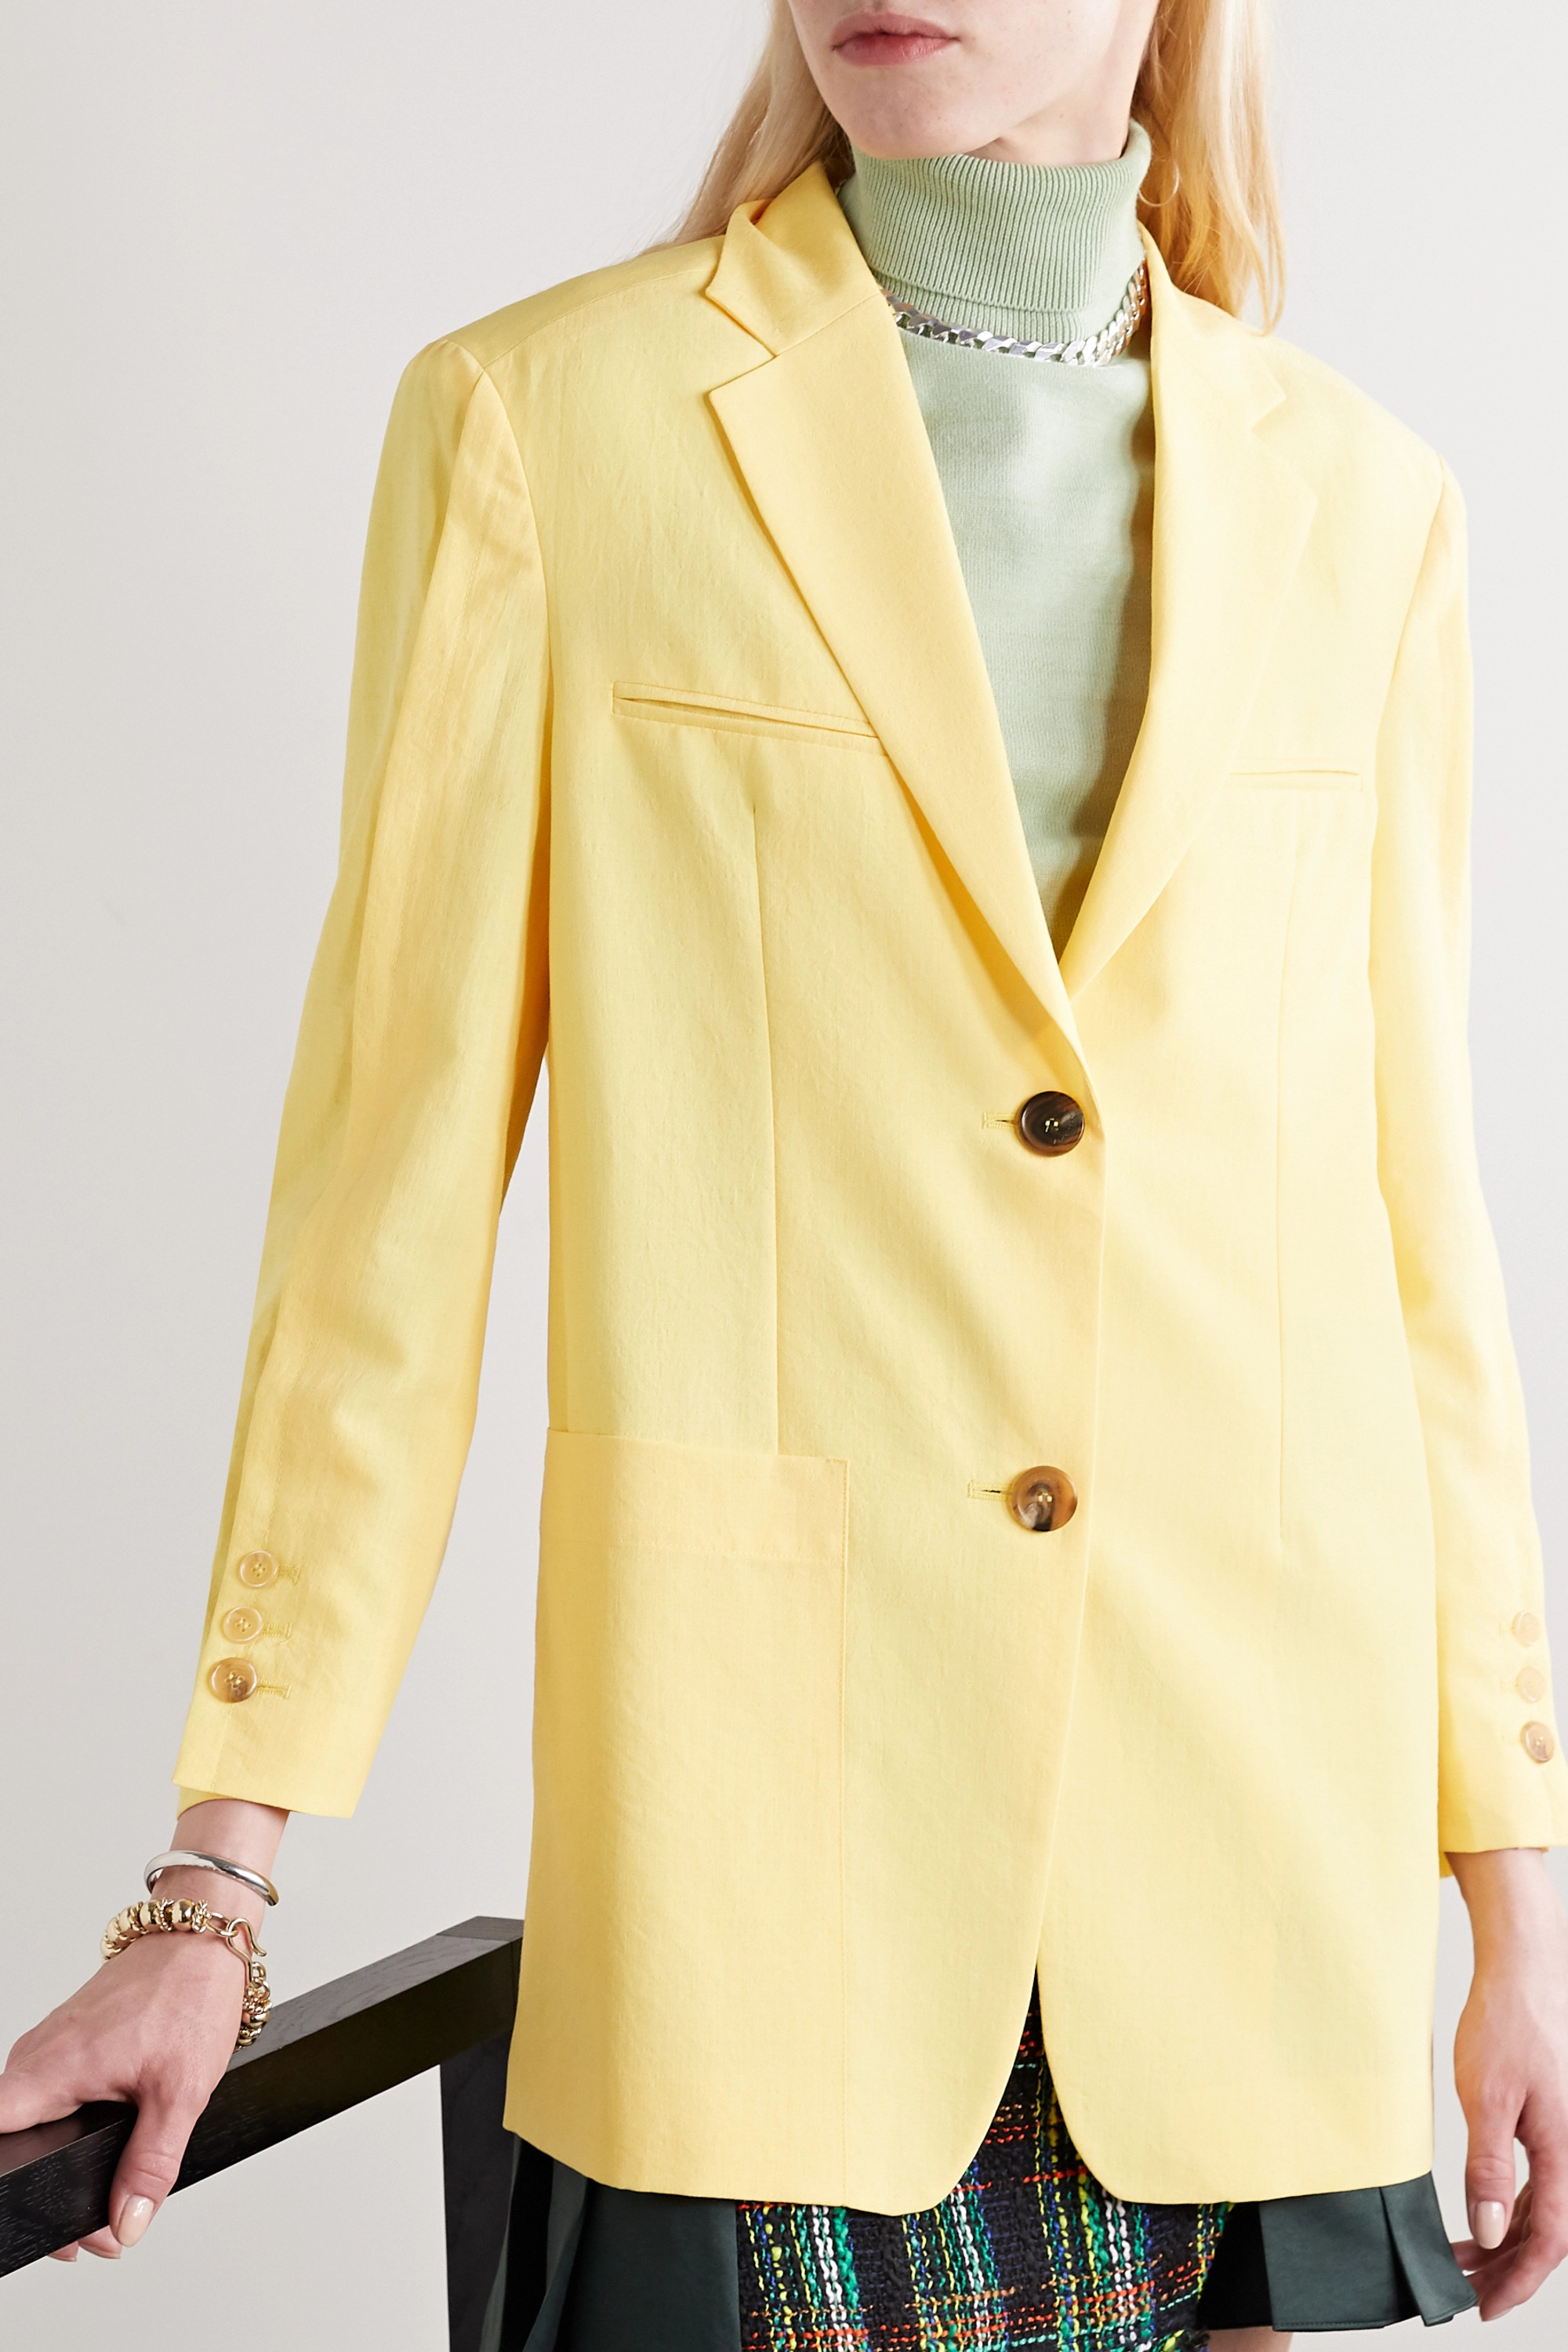 Andersson Bell Cintia oversized woven blazer